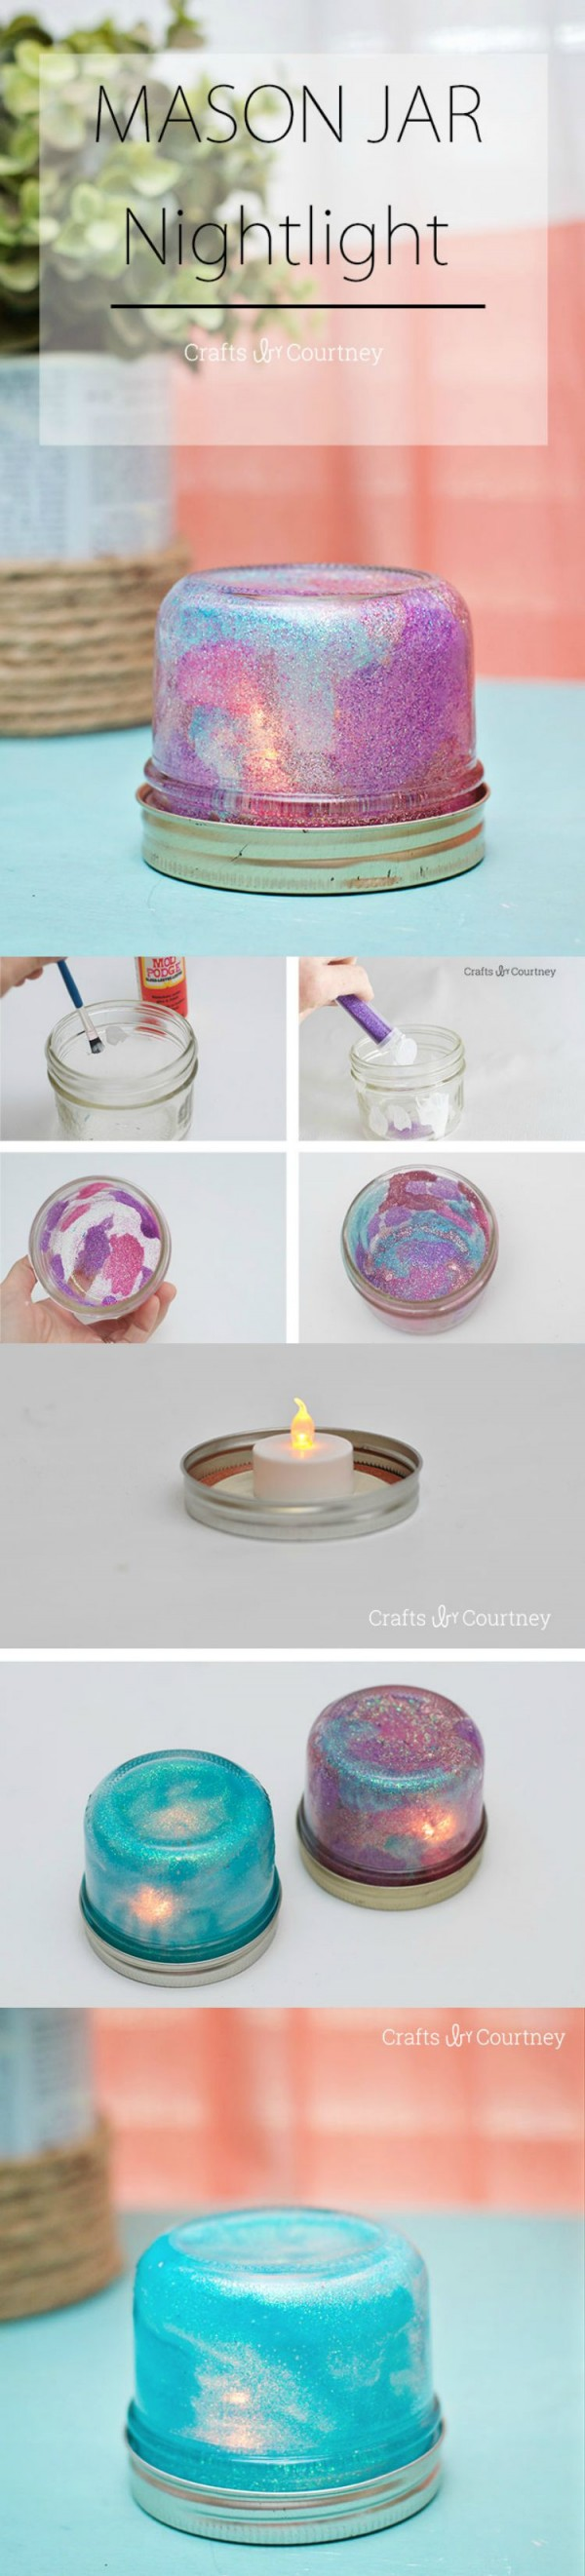 DIY Nightlight